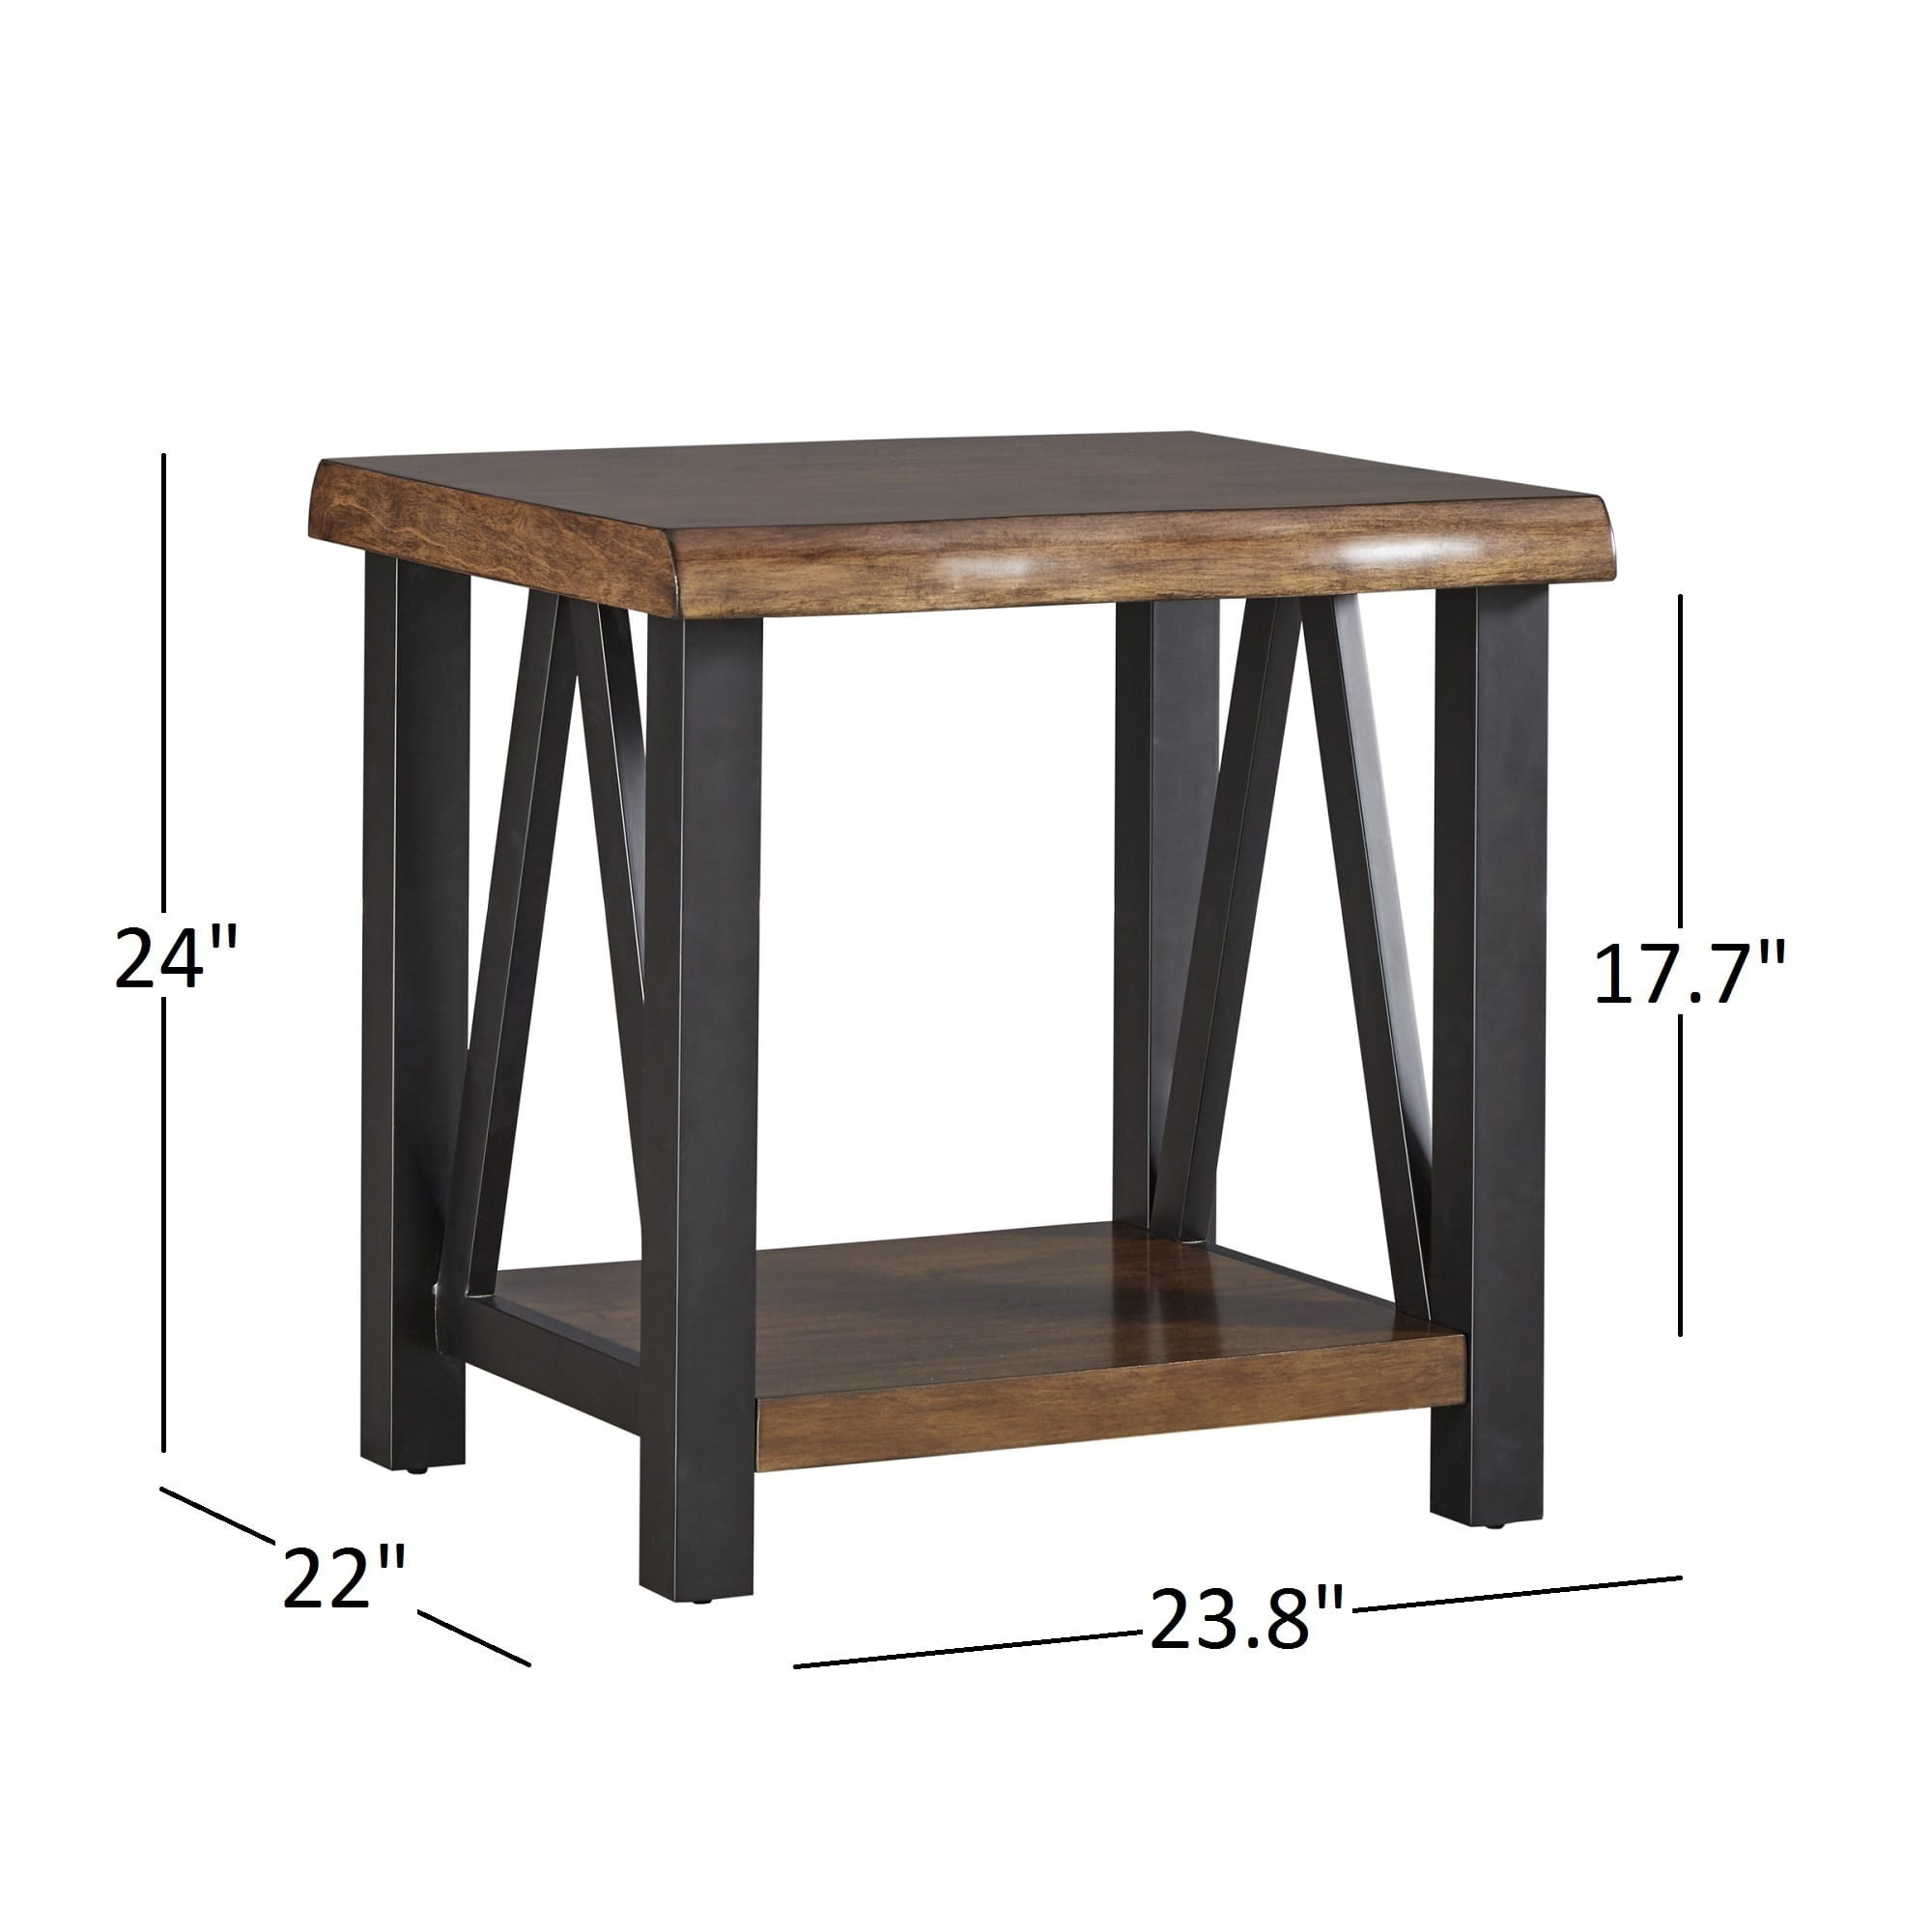 art van tables probably terrific awesome end table wood metal banyan live edge and accent inspire artisan free shipping today whalen furniture high gloss coffee galvin cafeteria